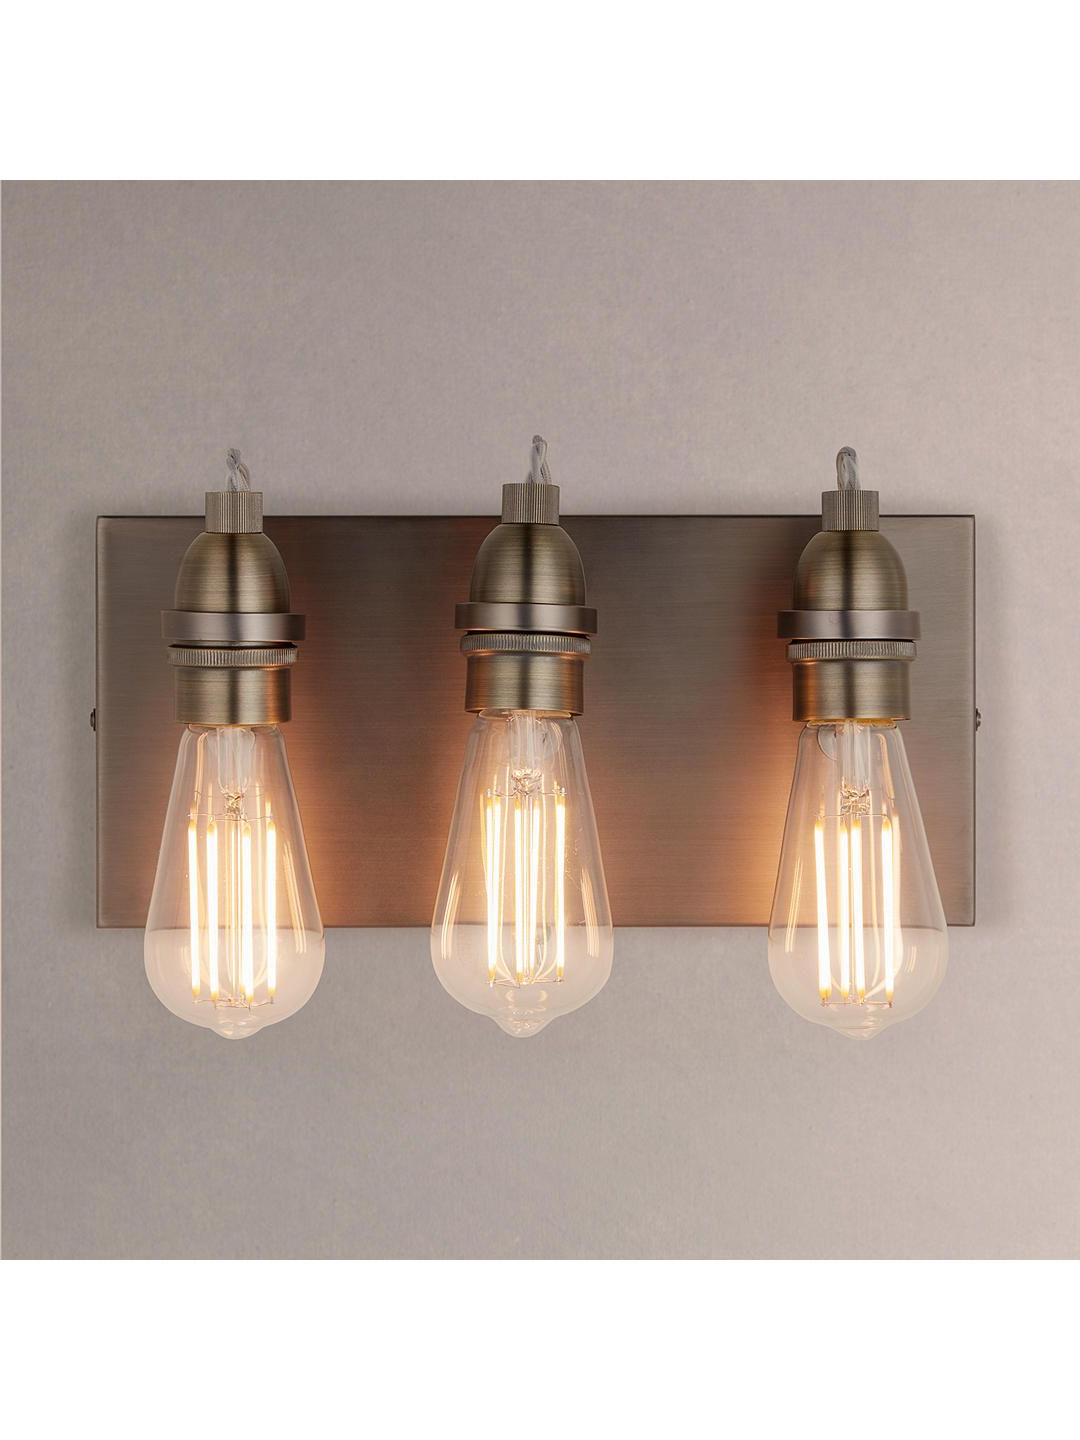 Amara 3 Light Dome Pendants For Popular John Lewis & Partners Bistro 3 Arm Wall Light, Antique Brass (View 5 of 25)